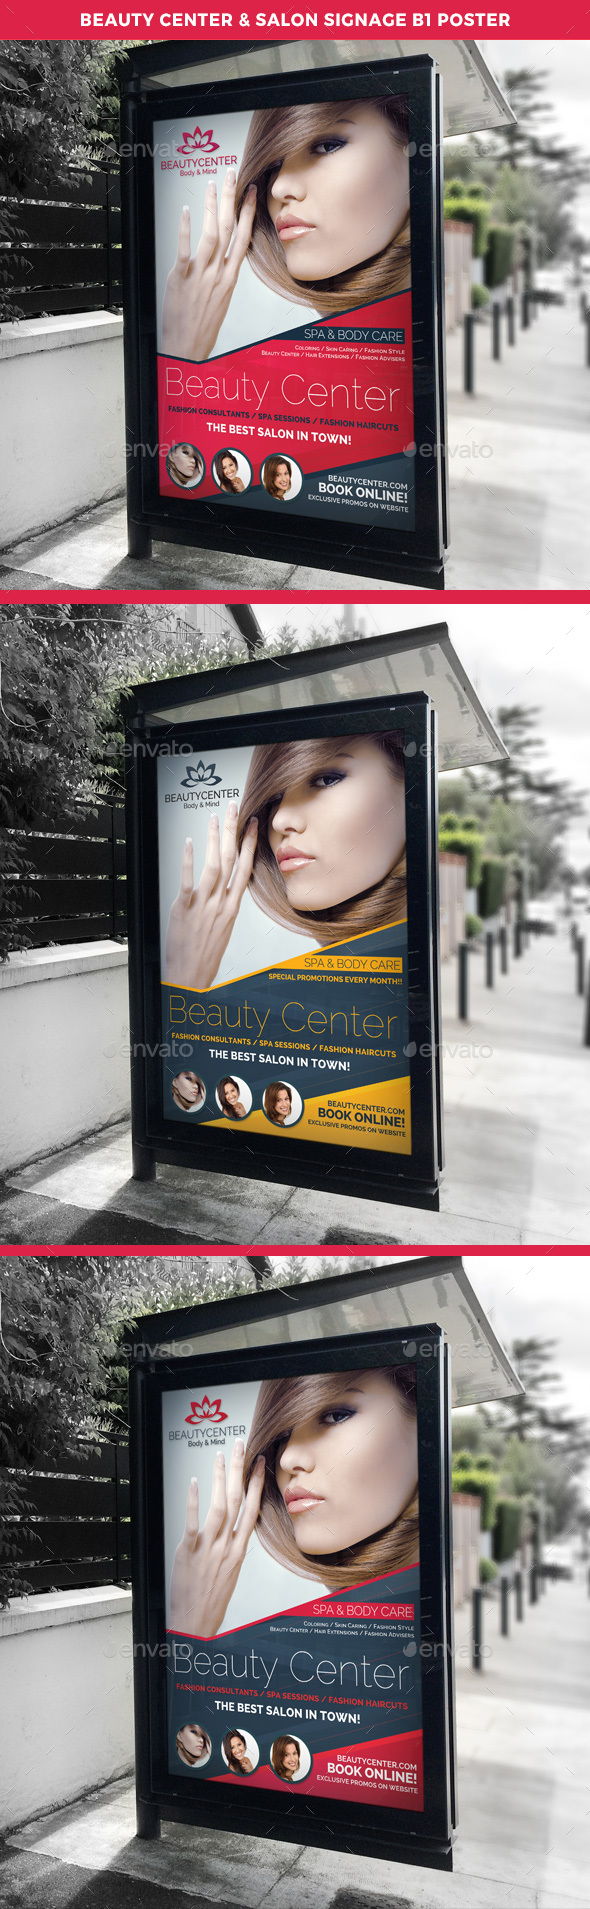 Beauty Center & Spa Signage B1 Poster Template - Signage Print Templates